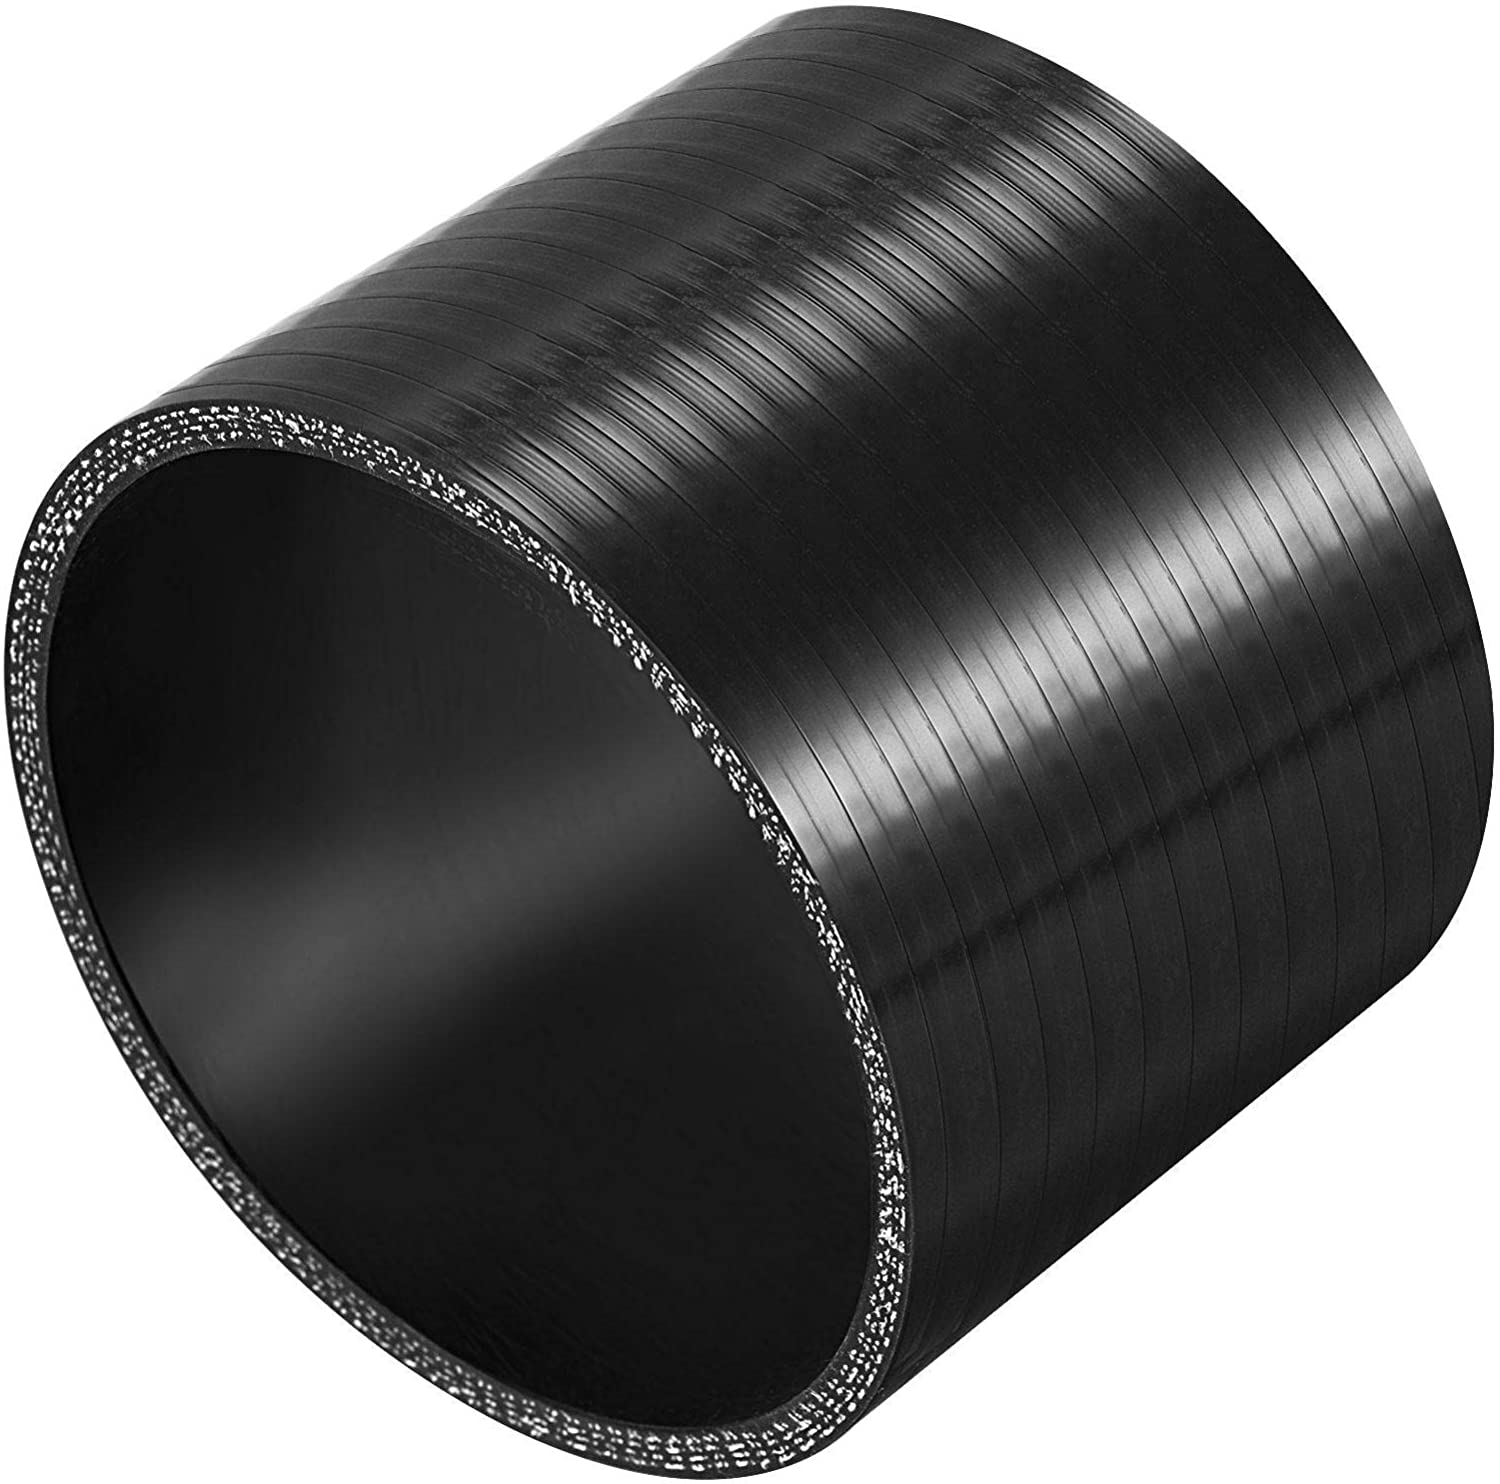 X AUTOHAUX 89mm 3.50 ID Car Straight Silicone Coupler Turbo Pipe 76mm Black